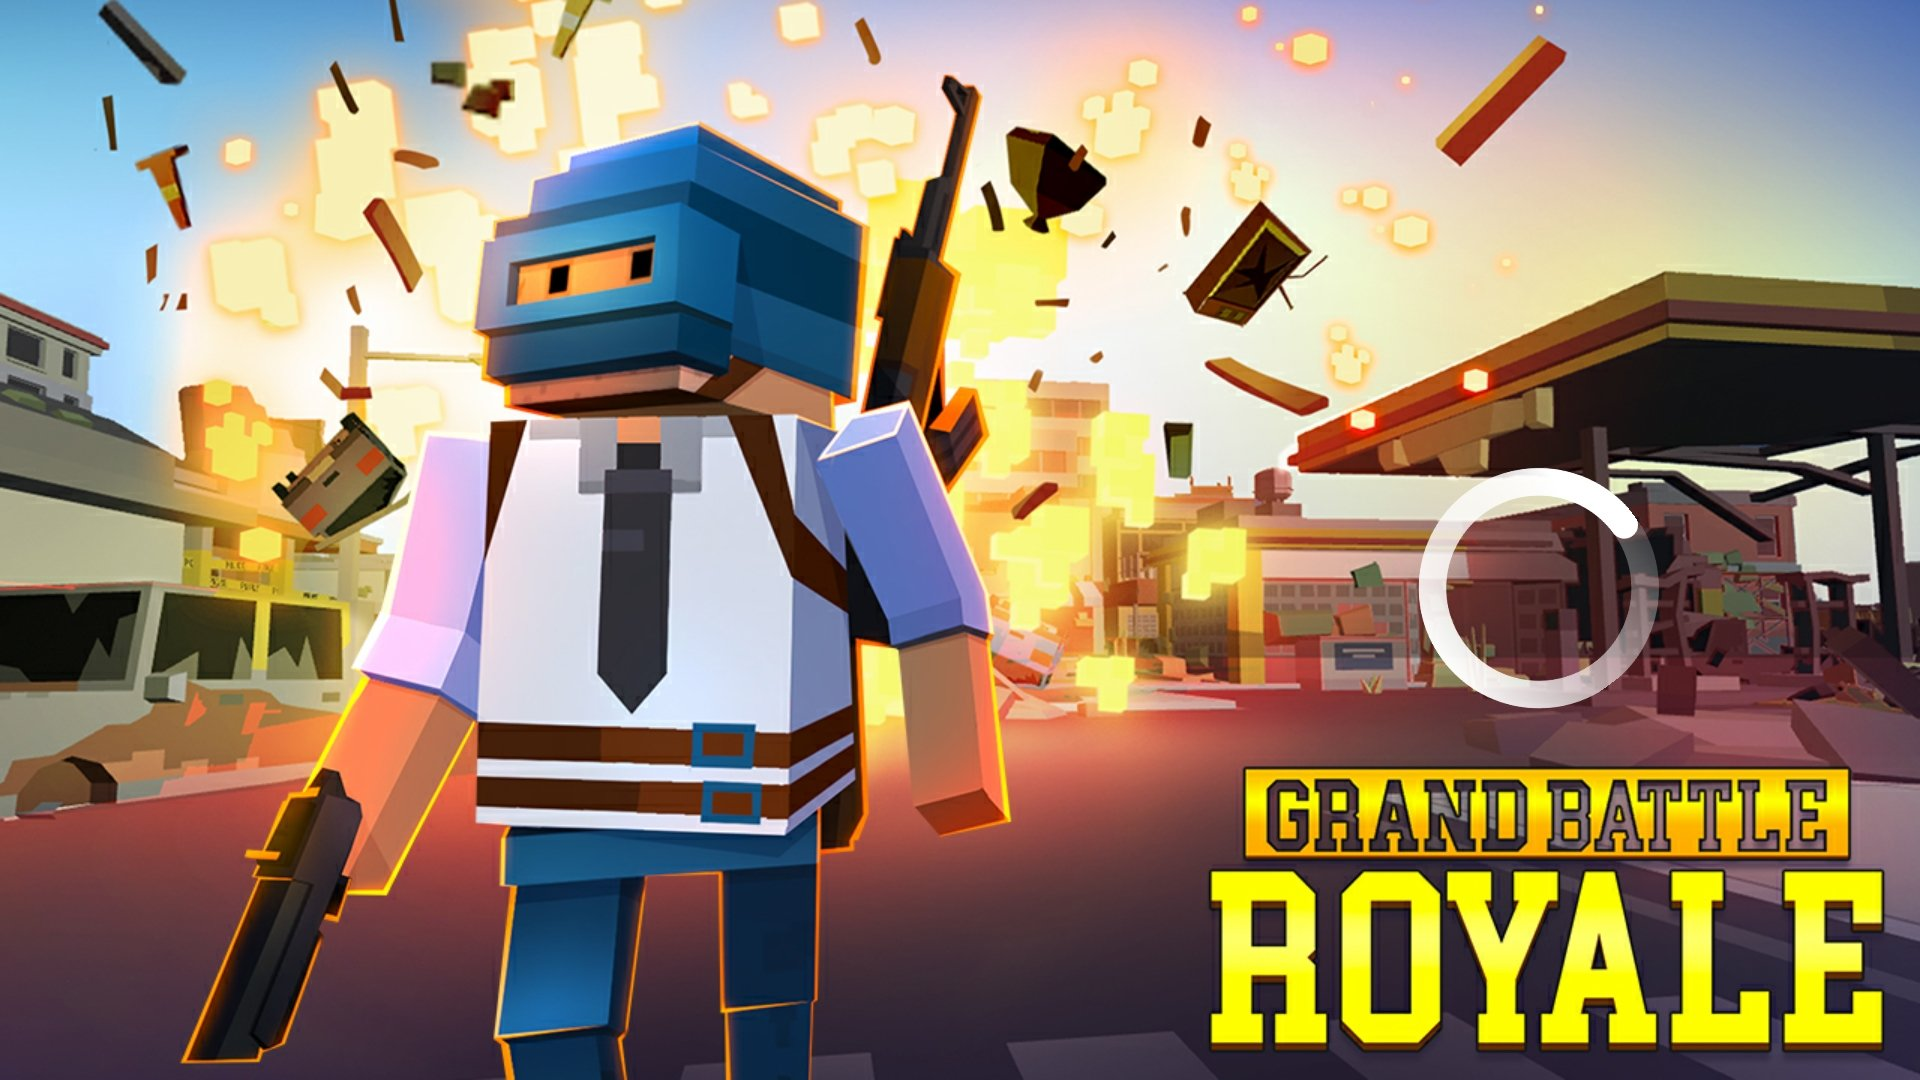 Linux Iphone Wallpaper Download Grand Battle Royale 2 7 Android Apk Free